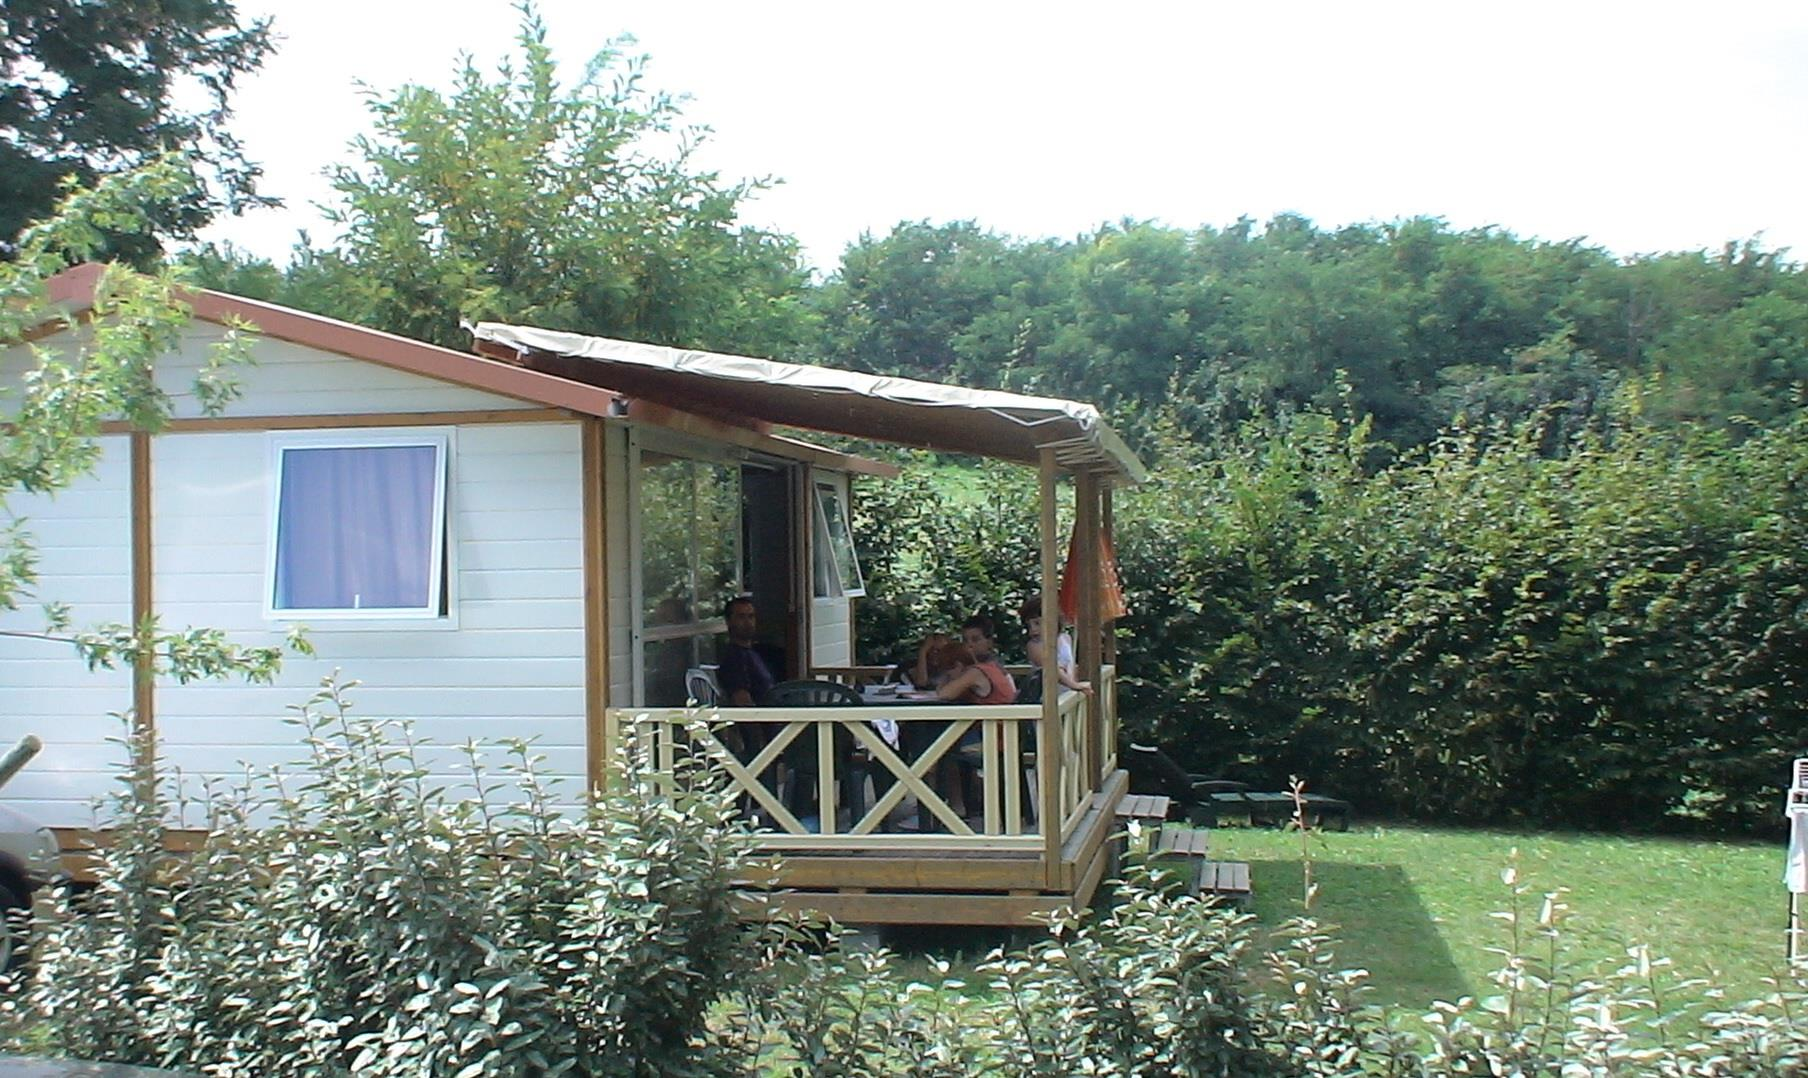 Accommodation - Chalet Eco (3 Bedrooms) 35 M2 + - Covered Terrasse - Flower Camping La Chataigneraie